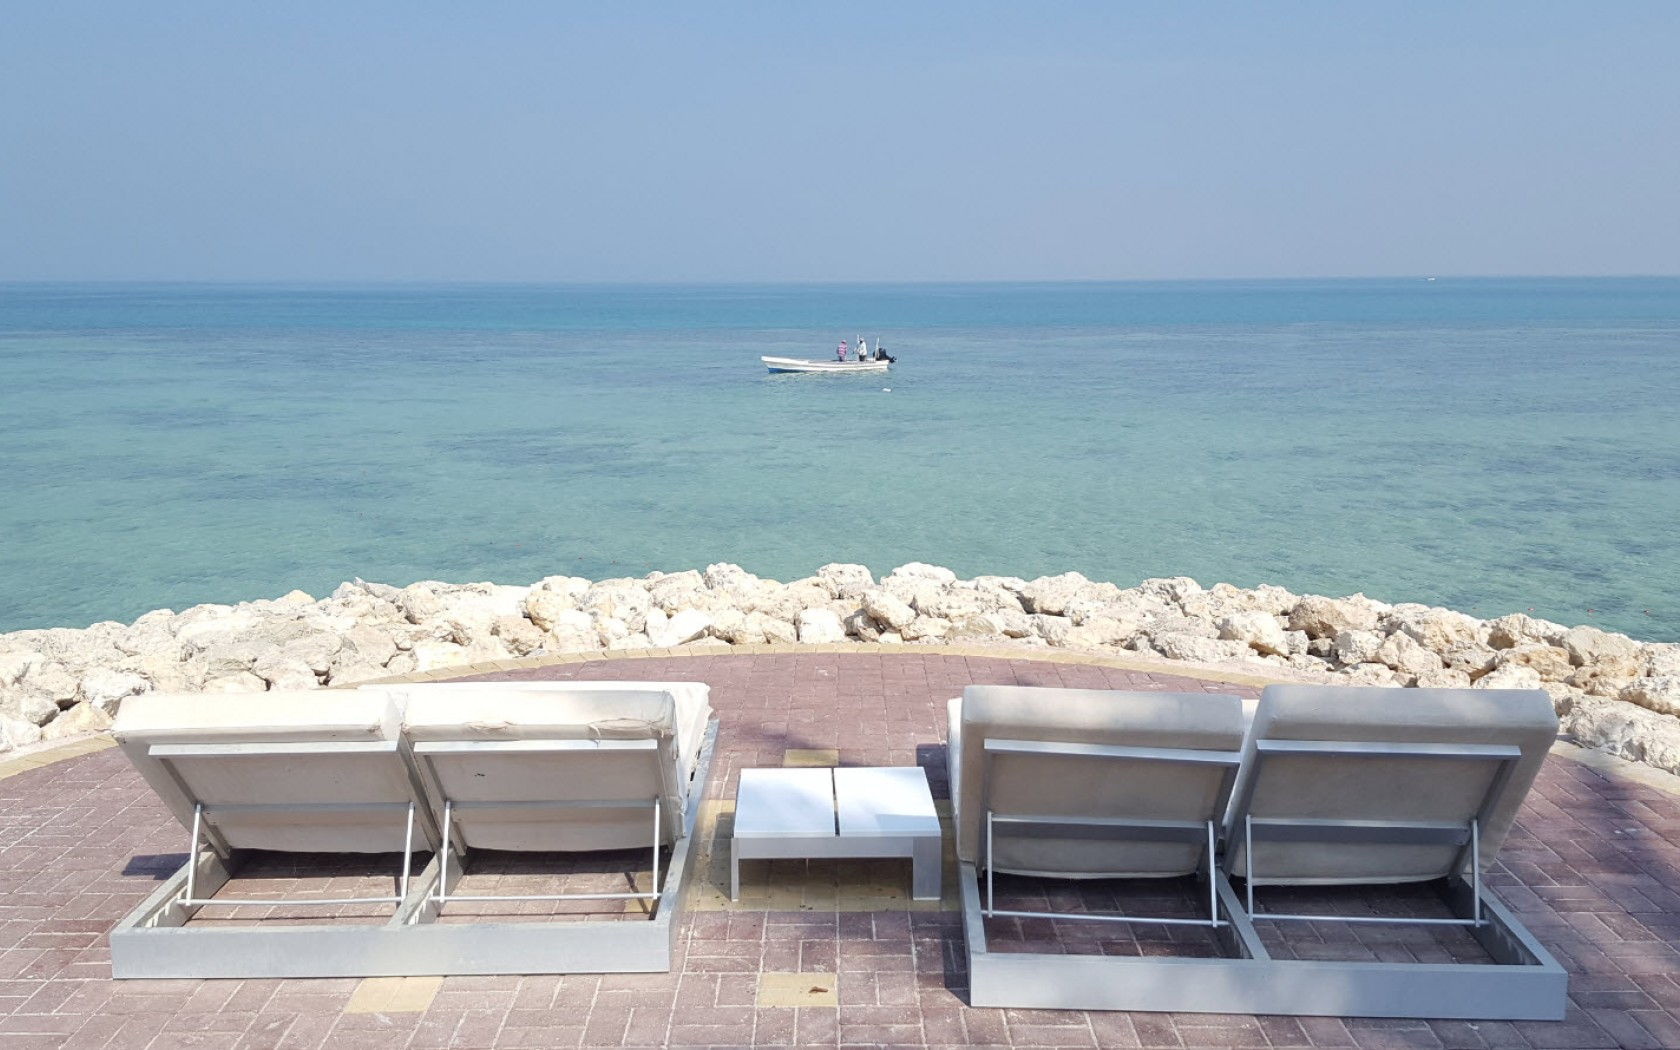 Un long weekend au Ritz-Carlton Bahrain: l'escapade idéale pour se ressourcer